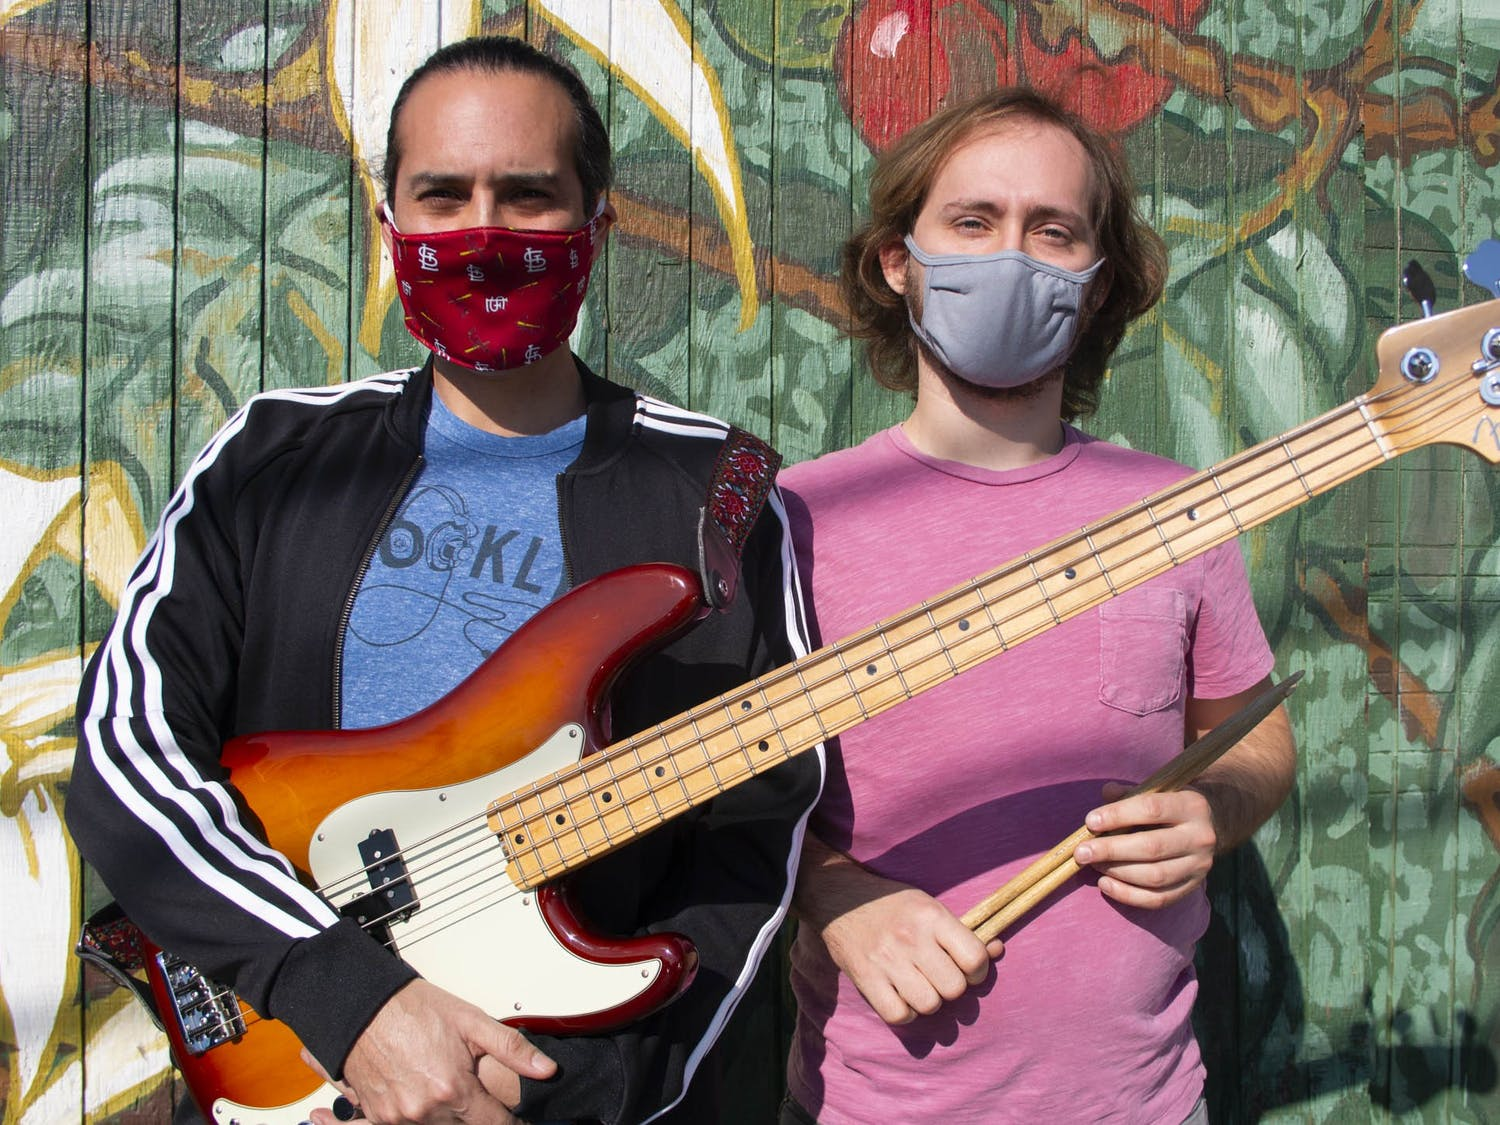 "Will Vizuete, 44, and Connor LaMontagne, 25, are the bassist and drummer for The Unsustainables, a band brought together by their mutual love for the environment and the traditional sounds of the Jaimaican 'Ska' genre. Vizuete is an Associate professor in the Environmental Science and Engineering department at the Gillings School of Public Health, while LaMontagne works in the same department as a PhD student. The band is composed of environmental scientists, engineers and even one EPA employee. According to LaMontagne, Ska is the predecessor of reggae. ""It's a cool mix,"" LaMontagne said. ""We'll be playing just a regular reggae tune and then Trent will call out dub style and we'll [make] what he describes as a 'subtractive art'. It's not about making a bunch of noise, it's more about what you sounds you remove and sort of tastefully messing with the arrangement."" Vizuete agrees that the band's mutual love for this era of music makes the group so amazing. ""What's really hip about it is that we're all writing new songs,"" Vizuete said. ""It's something new and contemporary, because [we're] writing about stuff in [our] own life, but it's within this kind of era of sound that we love. And that's the fun part, trying to recreate that sound."" The Unsustainables create this sound through the use of drums, bass, guitar, trumpet, trombone, saxophone and conga. They are in the process of trying out a new piano player, according to Vizuete, which would bring the total number of members from seven to eight people. ""Just being able to play has really been keeping our sanity,"" Vizuete said."